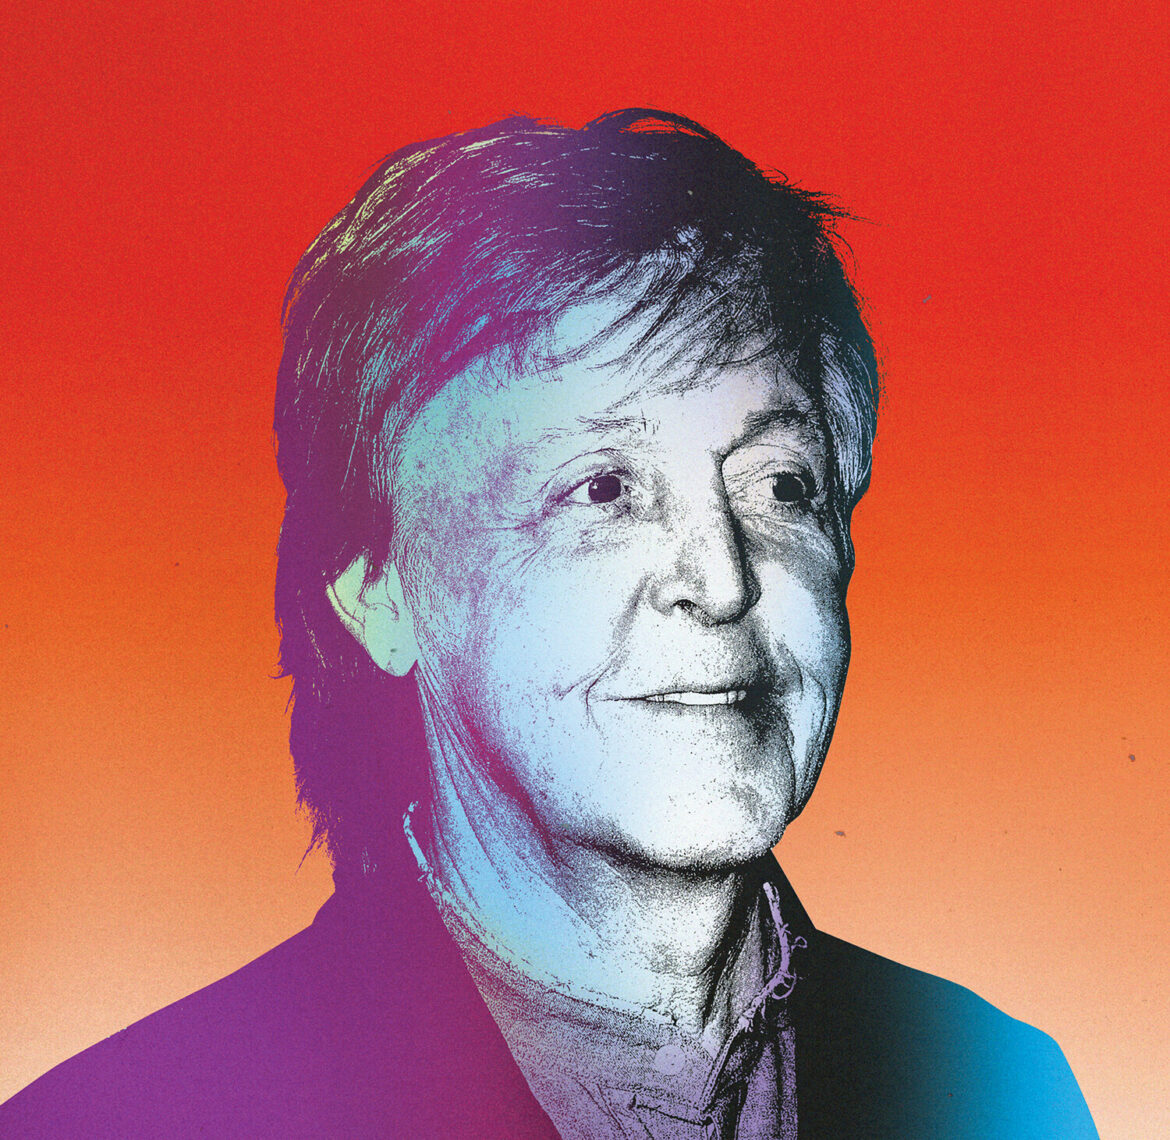 How did Paul McCartney became the richest musician? What is the net worth of Paul McCartney?